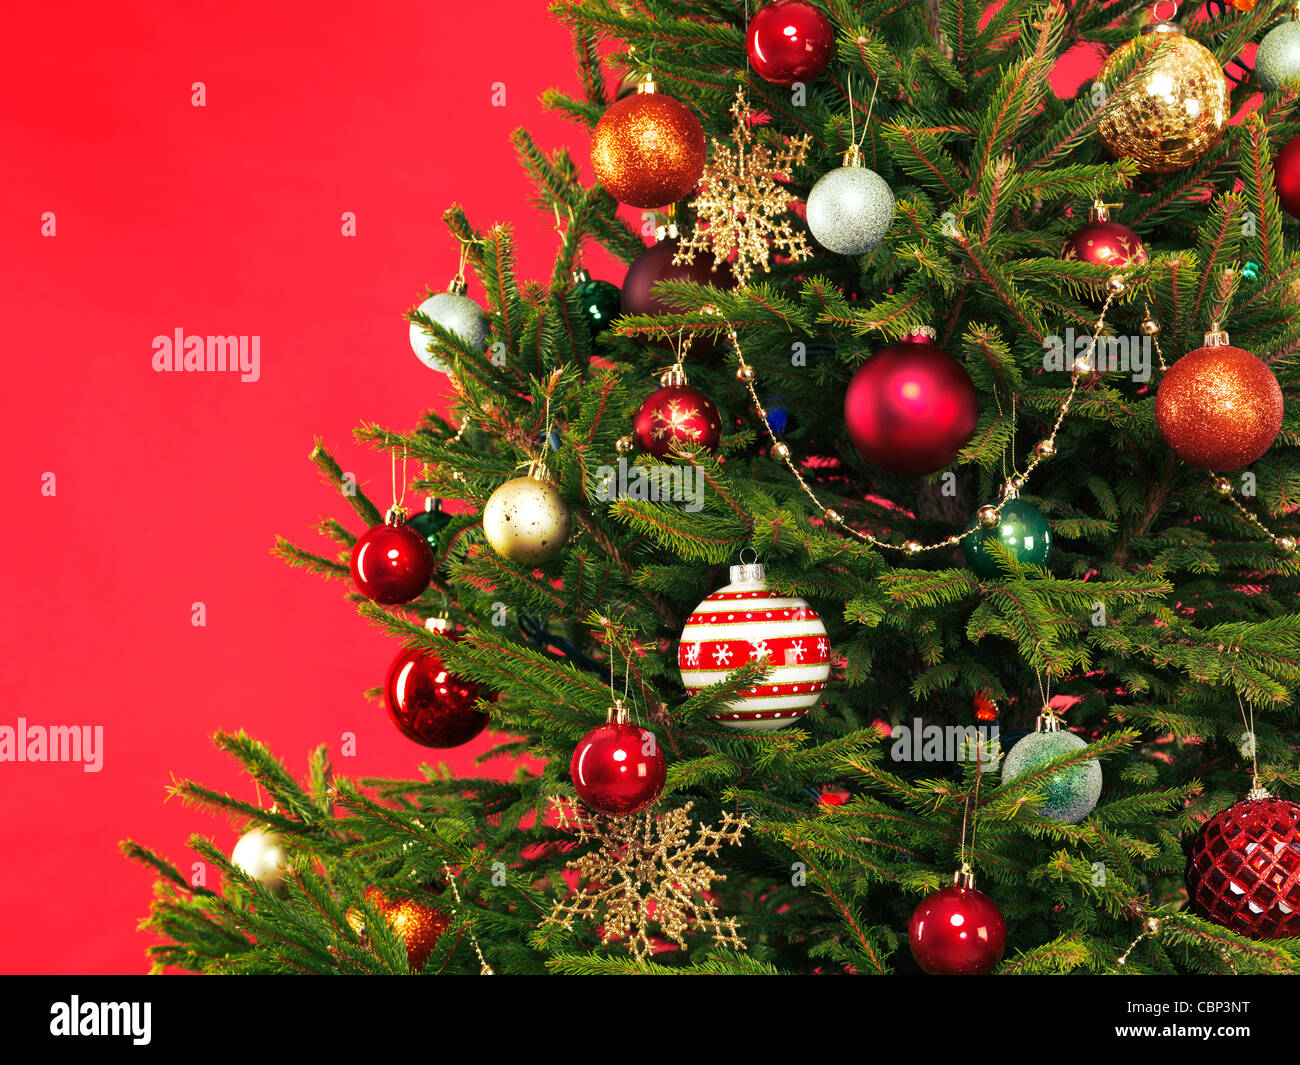 Closeup of Christmas tree colorful decoration on bright red background - Stock Image